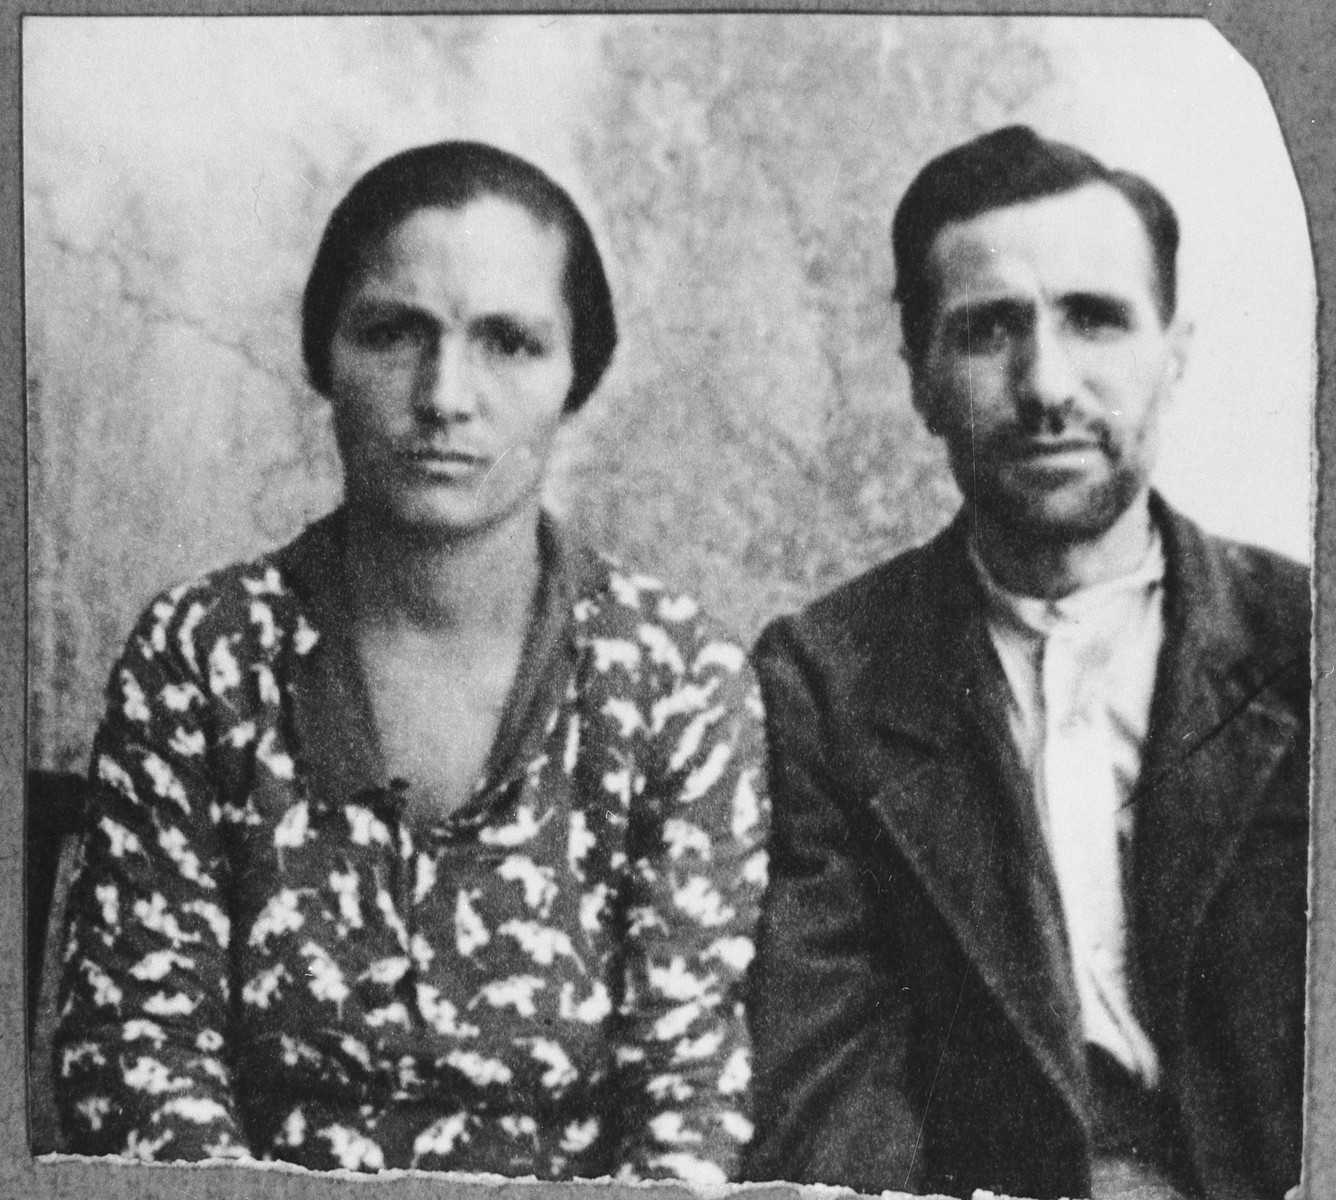 Portrait of Yuda Koen and his wife, Rekula.  Yuda was a broommaker.  They lived at Zmayeva 14 in Bitola.